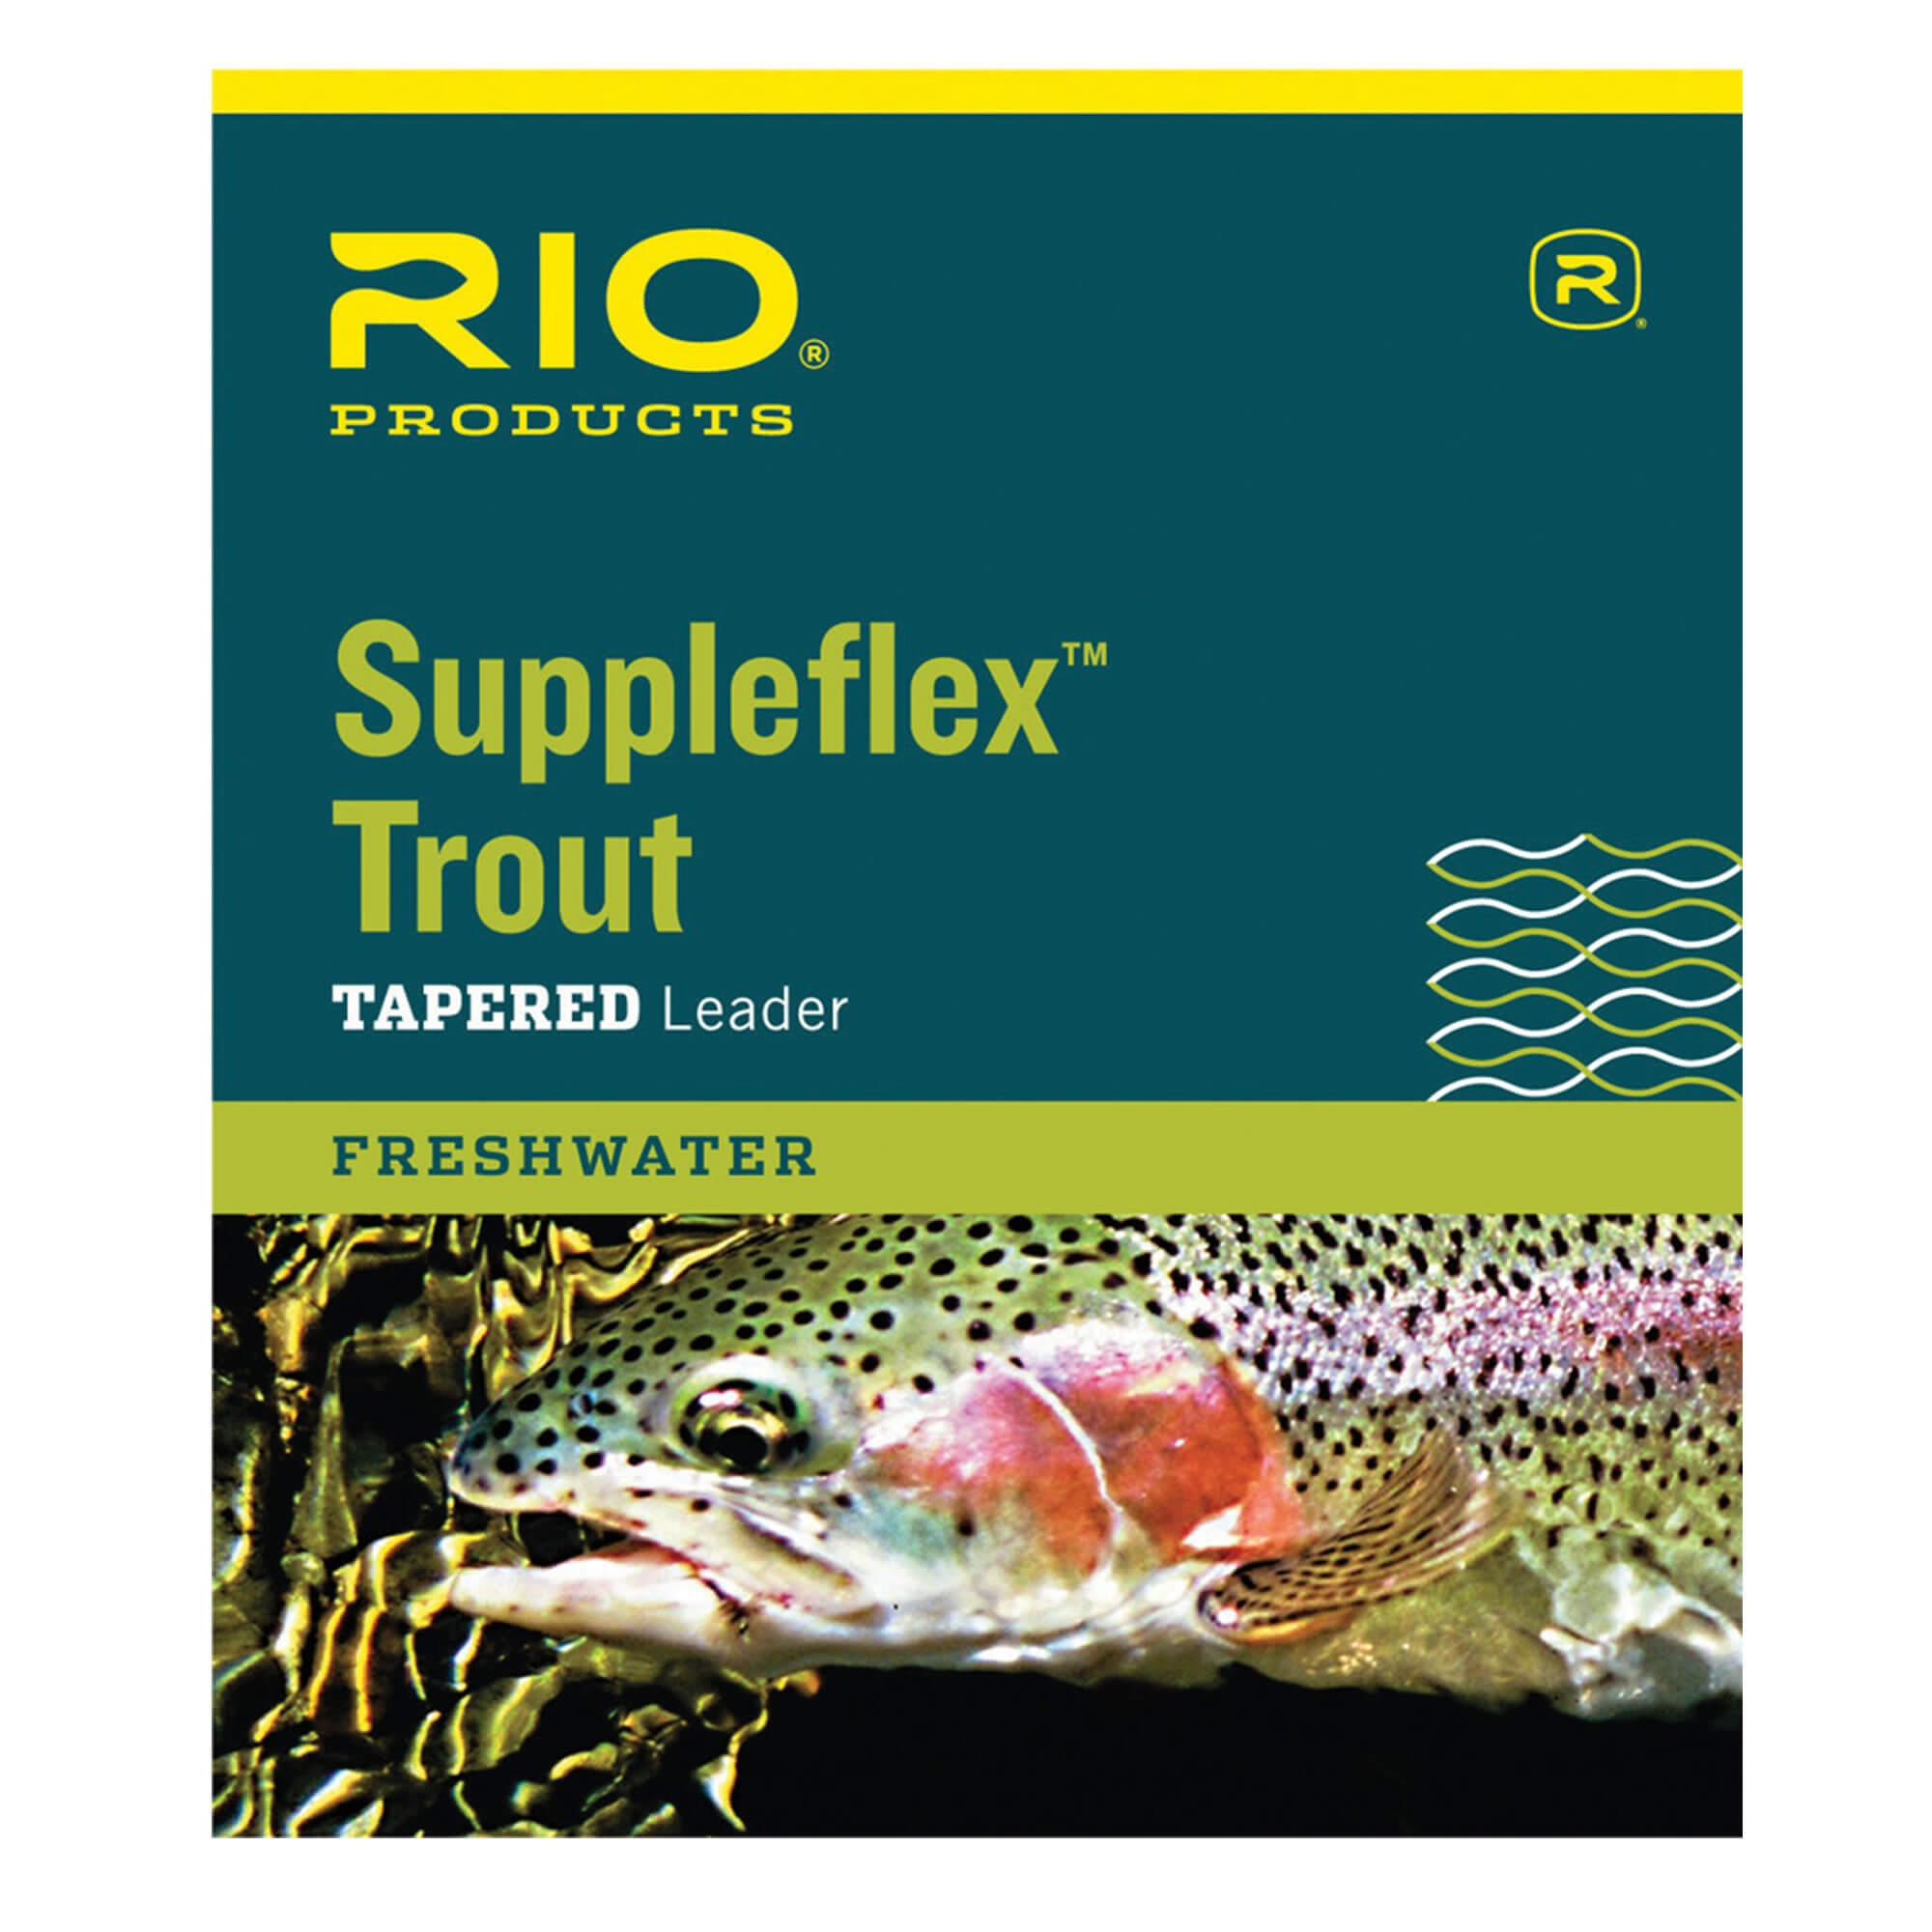 Freshwater Tapered Leader Suppleflex™ Trout